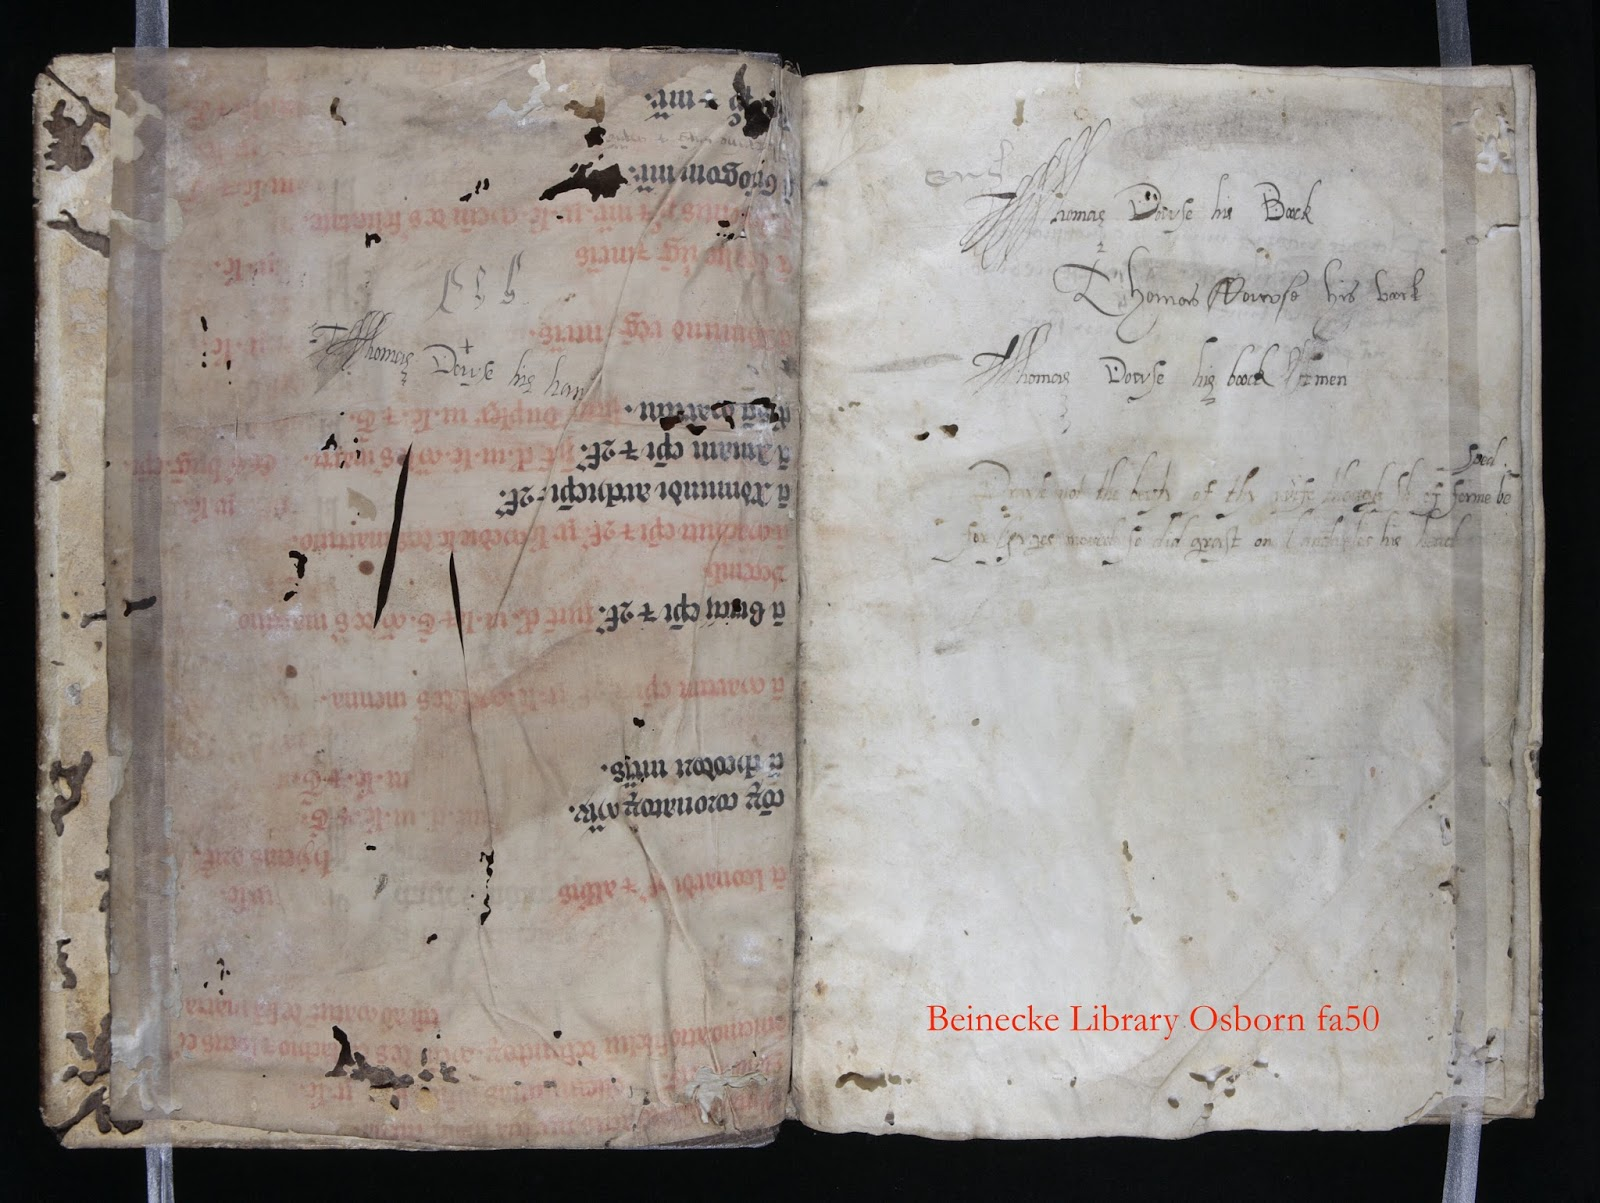 a n c h o r a re membering shakespeare shakespeare was not the only contemporary english writer whose work struck dowse as interesting since on another flyleaf he copied out an extract from